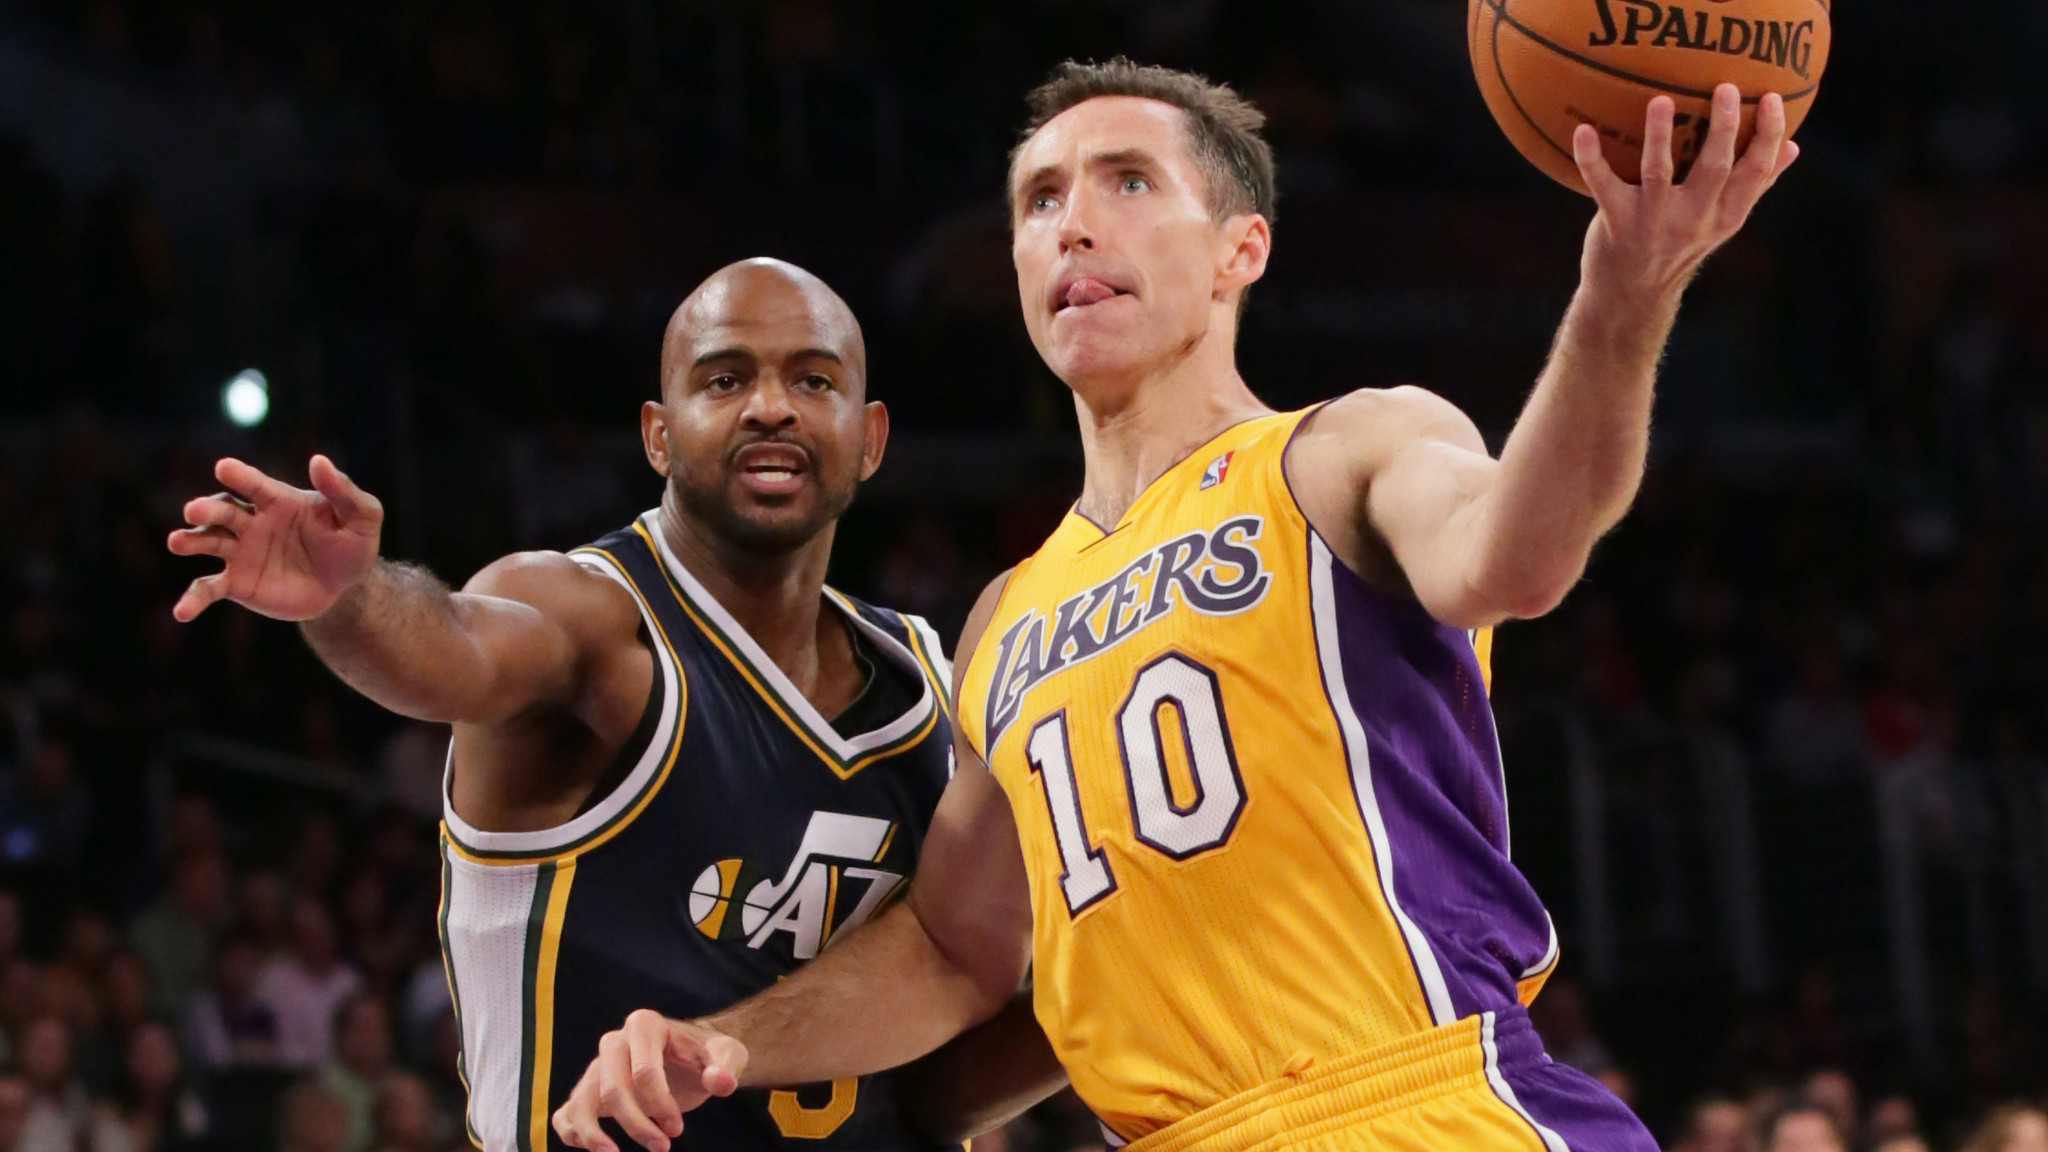 Lakers Carlos Boozer impressed by play of 40 year old Steve Nash